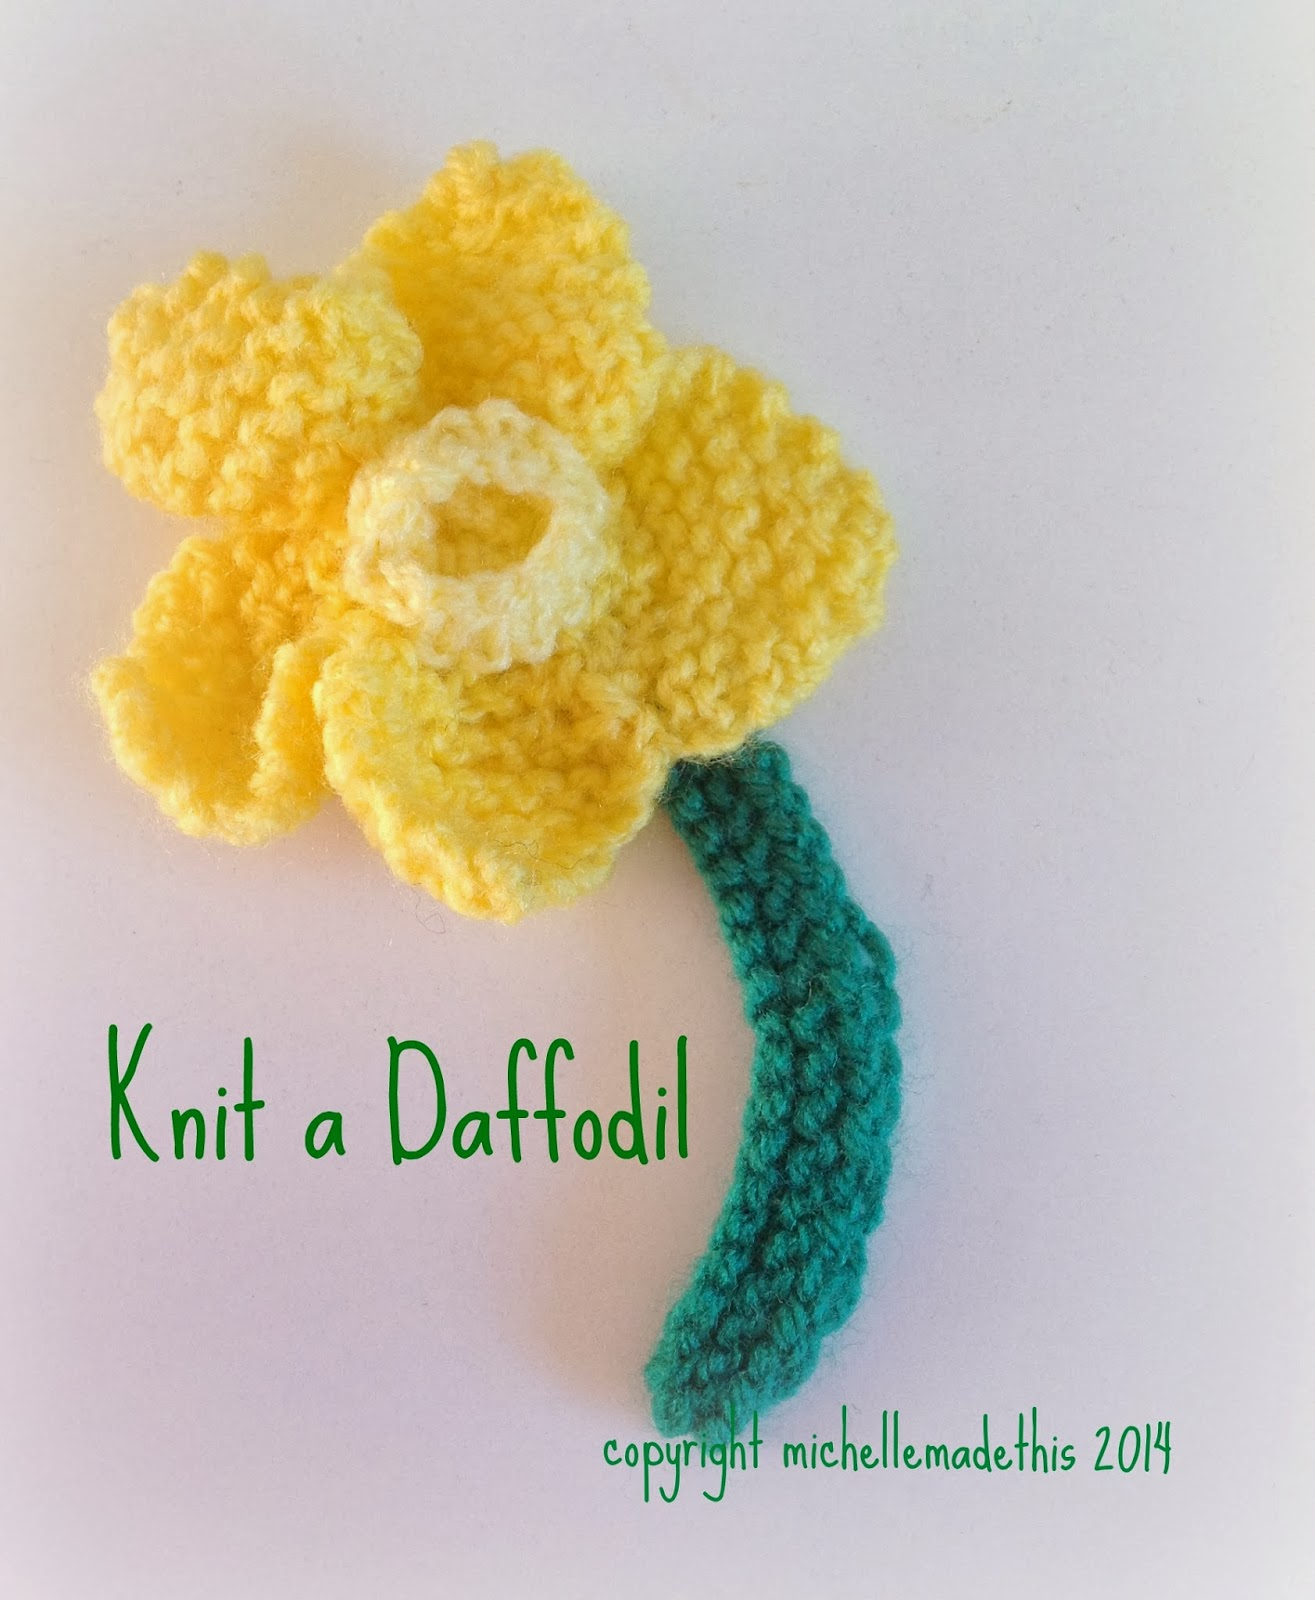 Fantastic 010 Editor Templates Tiny 1 Year Experience Resume Format For Java Developer Round 1 Year Experience Resume In Java J2ee 100 Free Resume Young 16 Oz Tumbler Template Dark2 Circle Template Michelle Made This: Knit A Daffodil For Irish Cancer Society